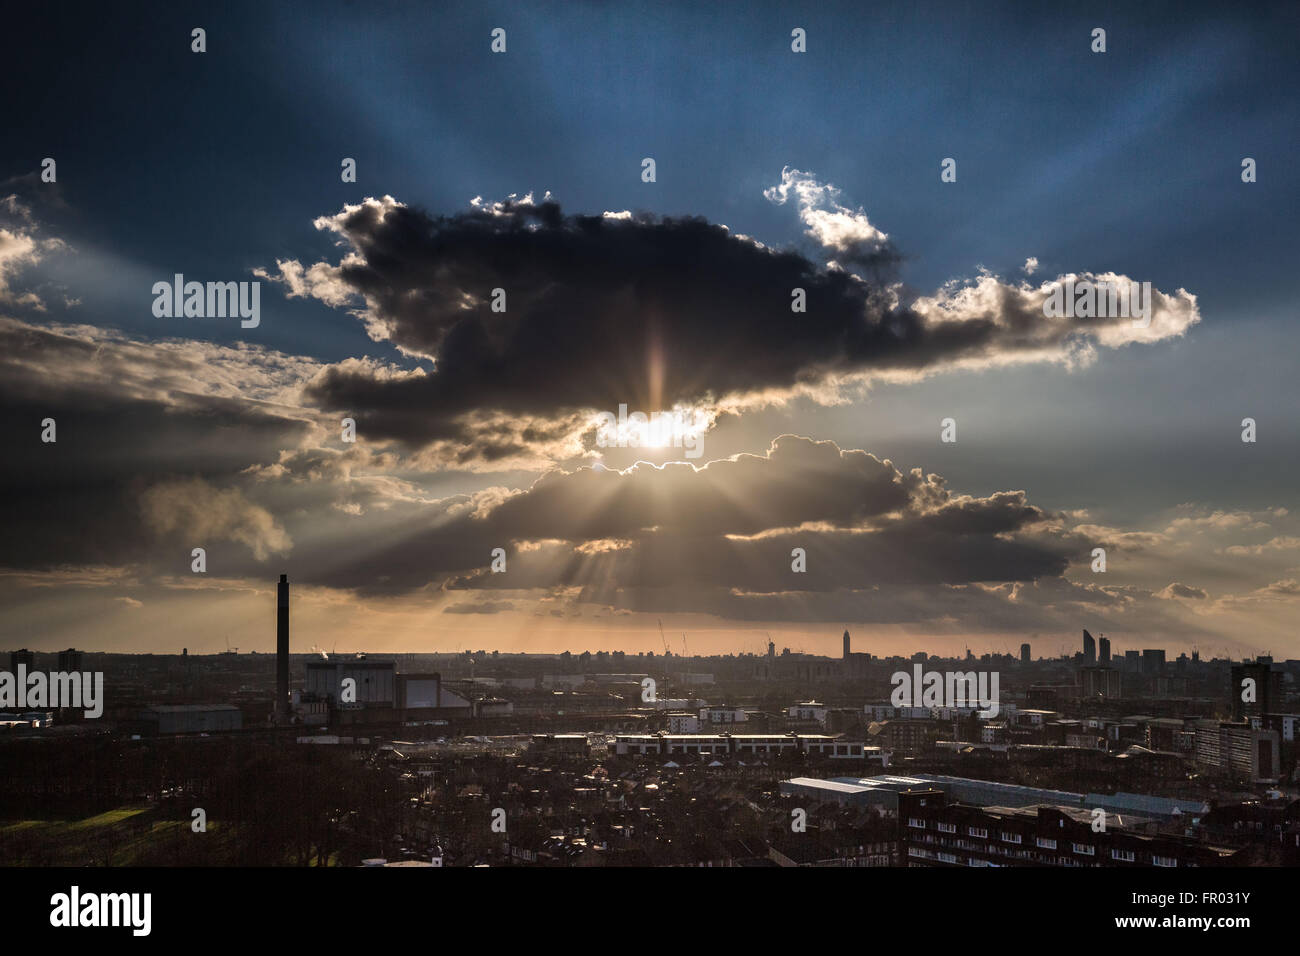 London, UK. 20th March, 2016. UK Weather: Afternoon sun rays burst through clouds over London city just before sunset - Stock Image